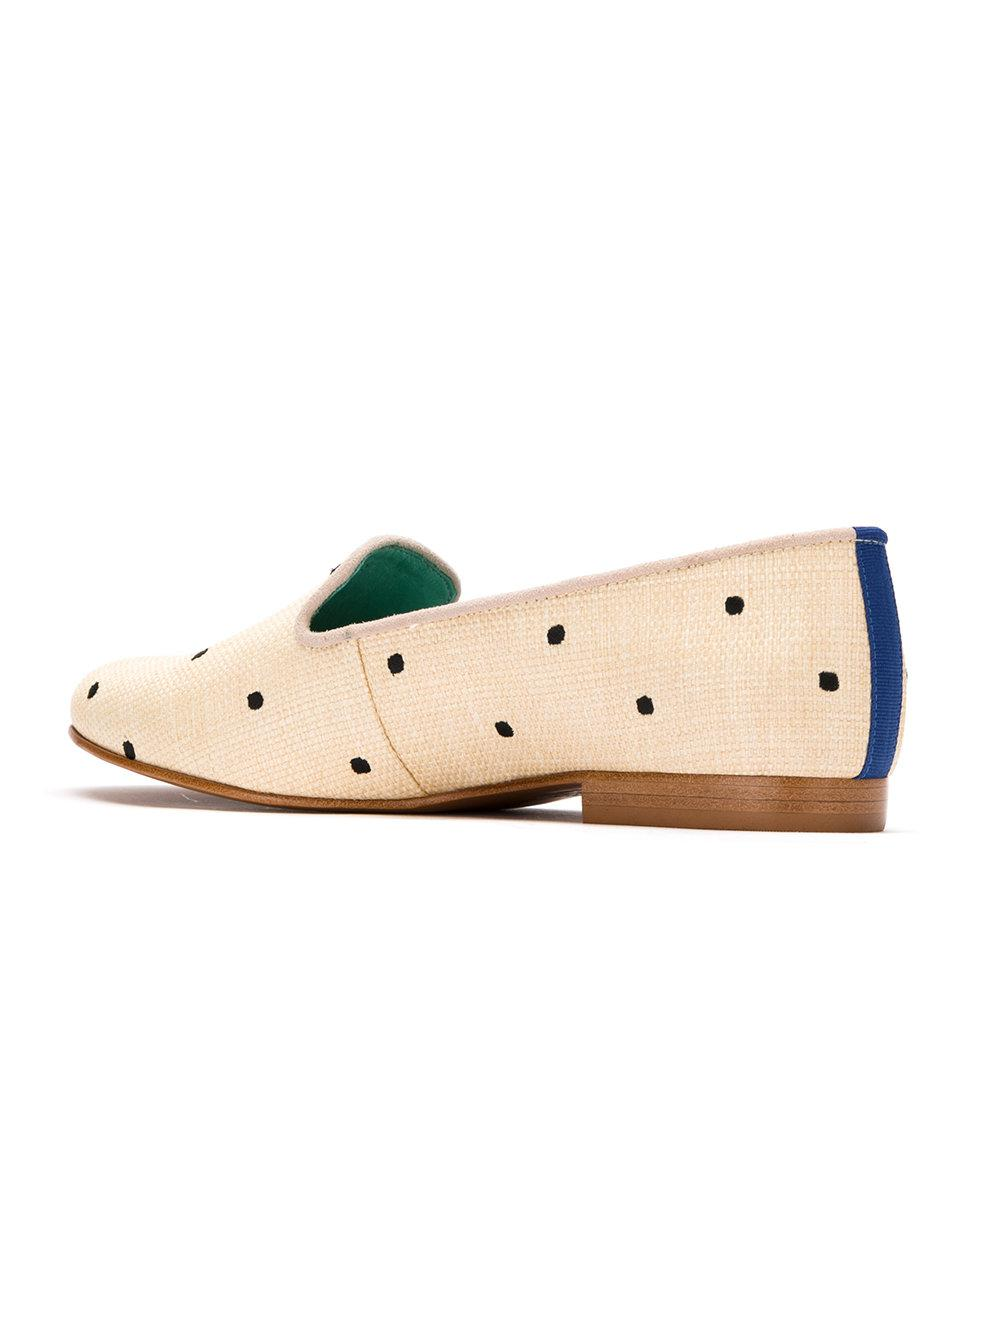 embroidered slippers - Nude & Neutrals Blue Bird Shoes Idv6JN